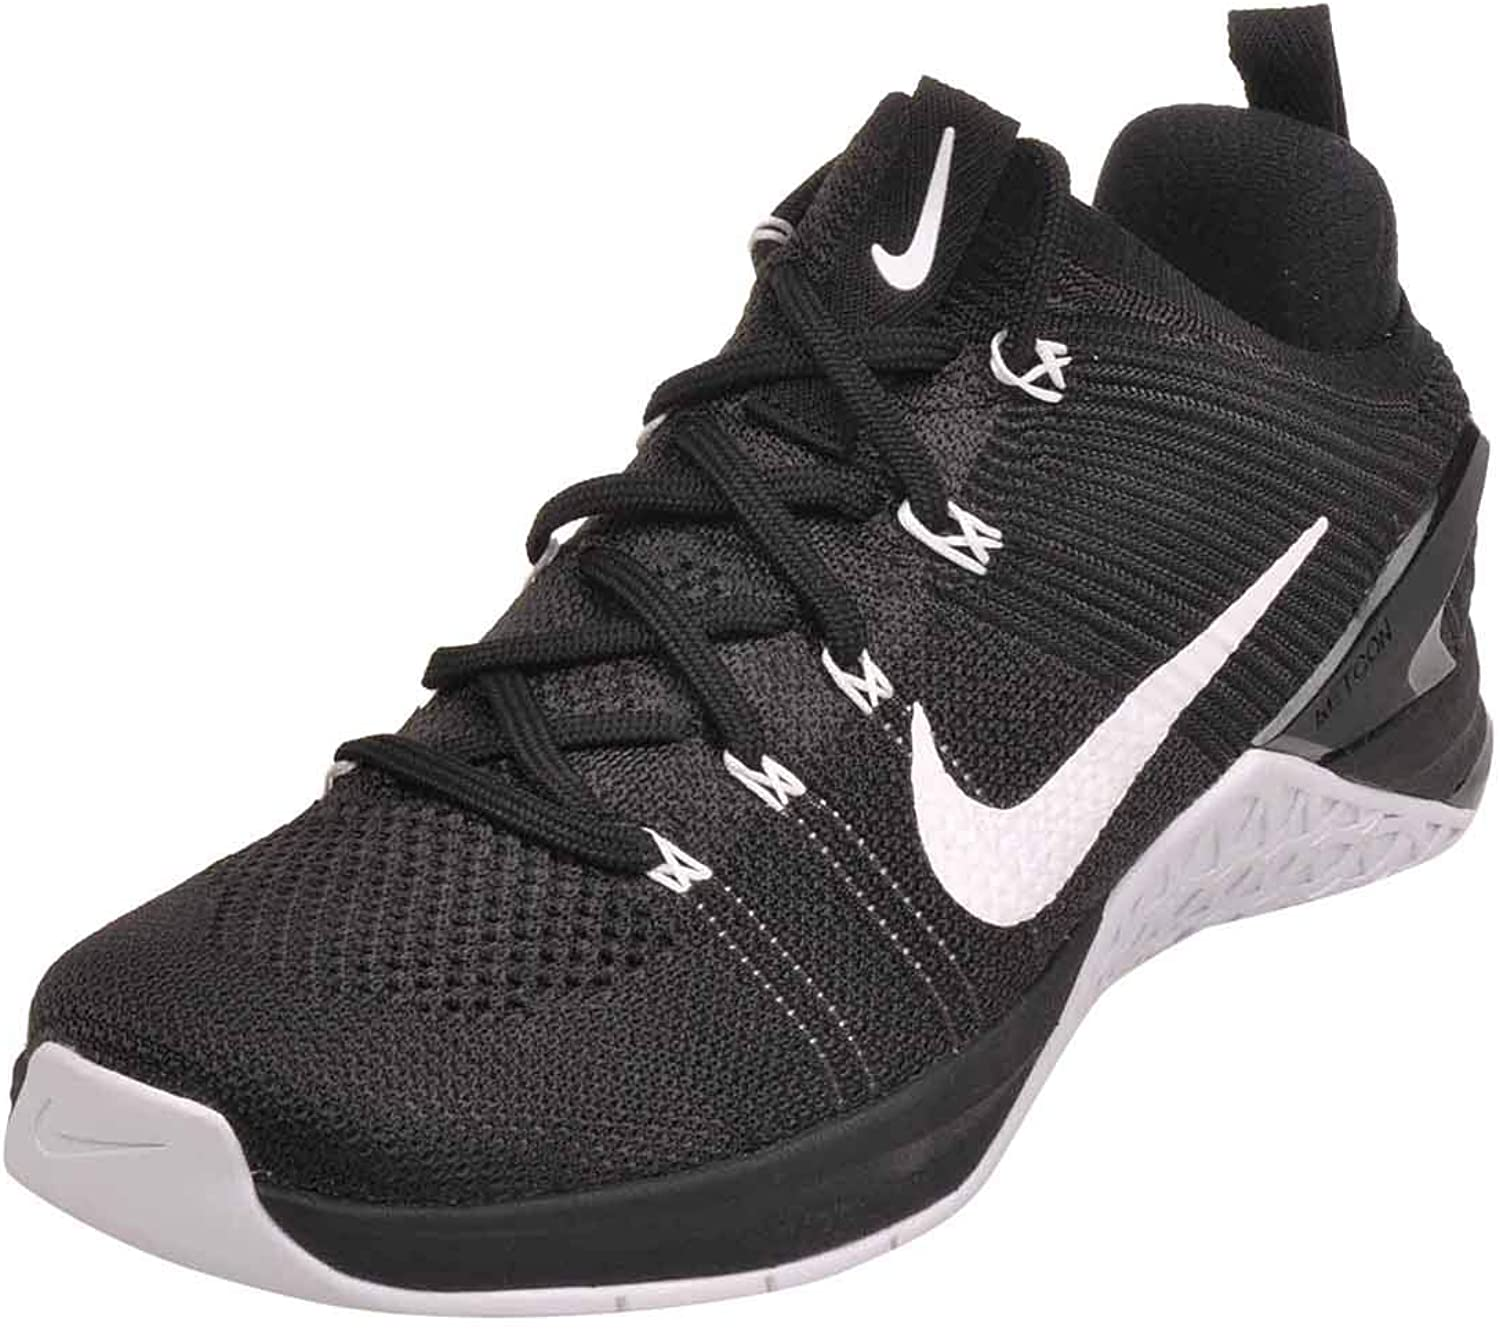 Rareza Trascender Infrarrojo  Amazon.com | Nike Metcon DSX Flyknit 2 Womens Trainers Cross Training Shoes  | Road Running